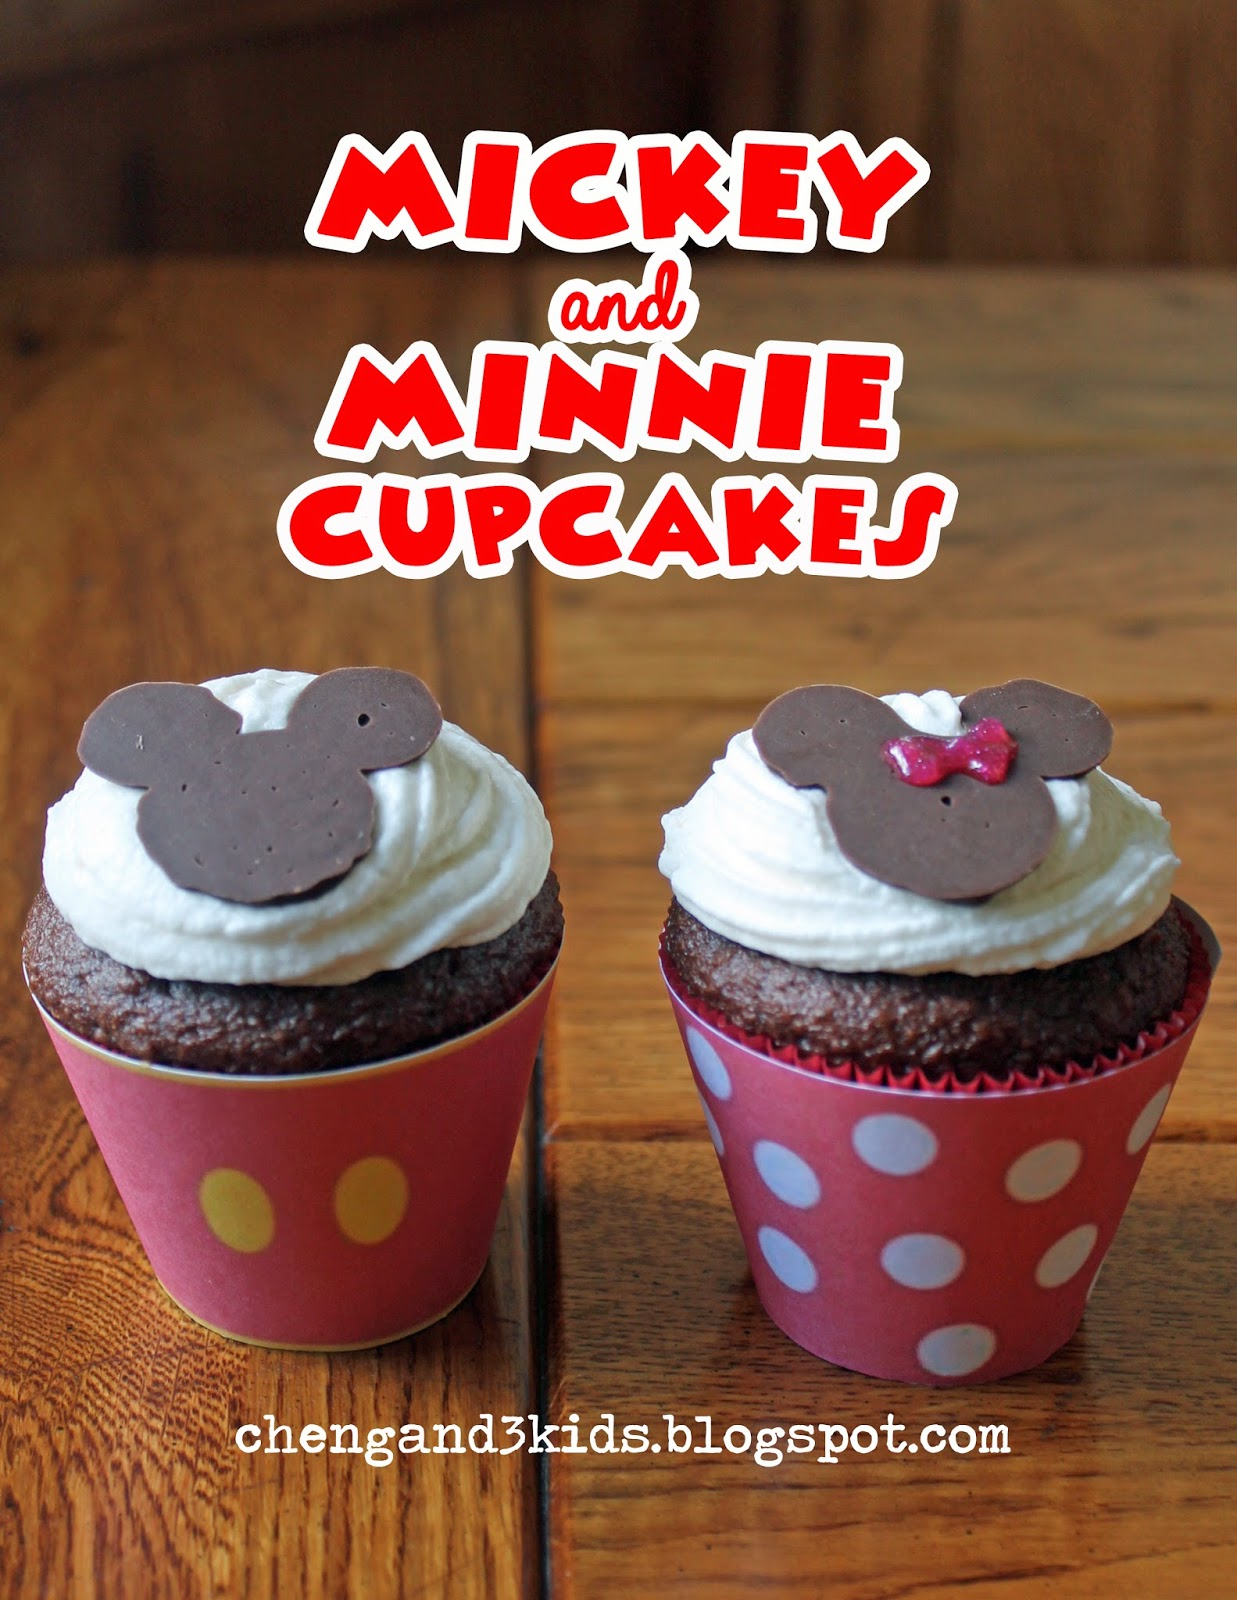 Mickey and Minnie Cupcakes at chengand3kids.blogspot.com